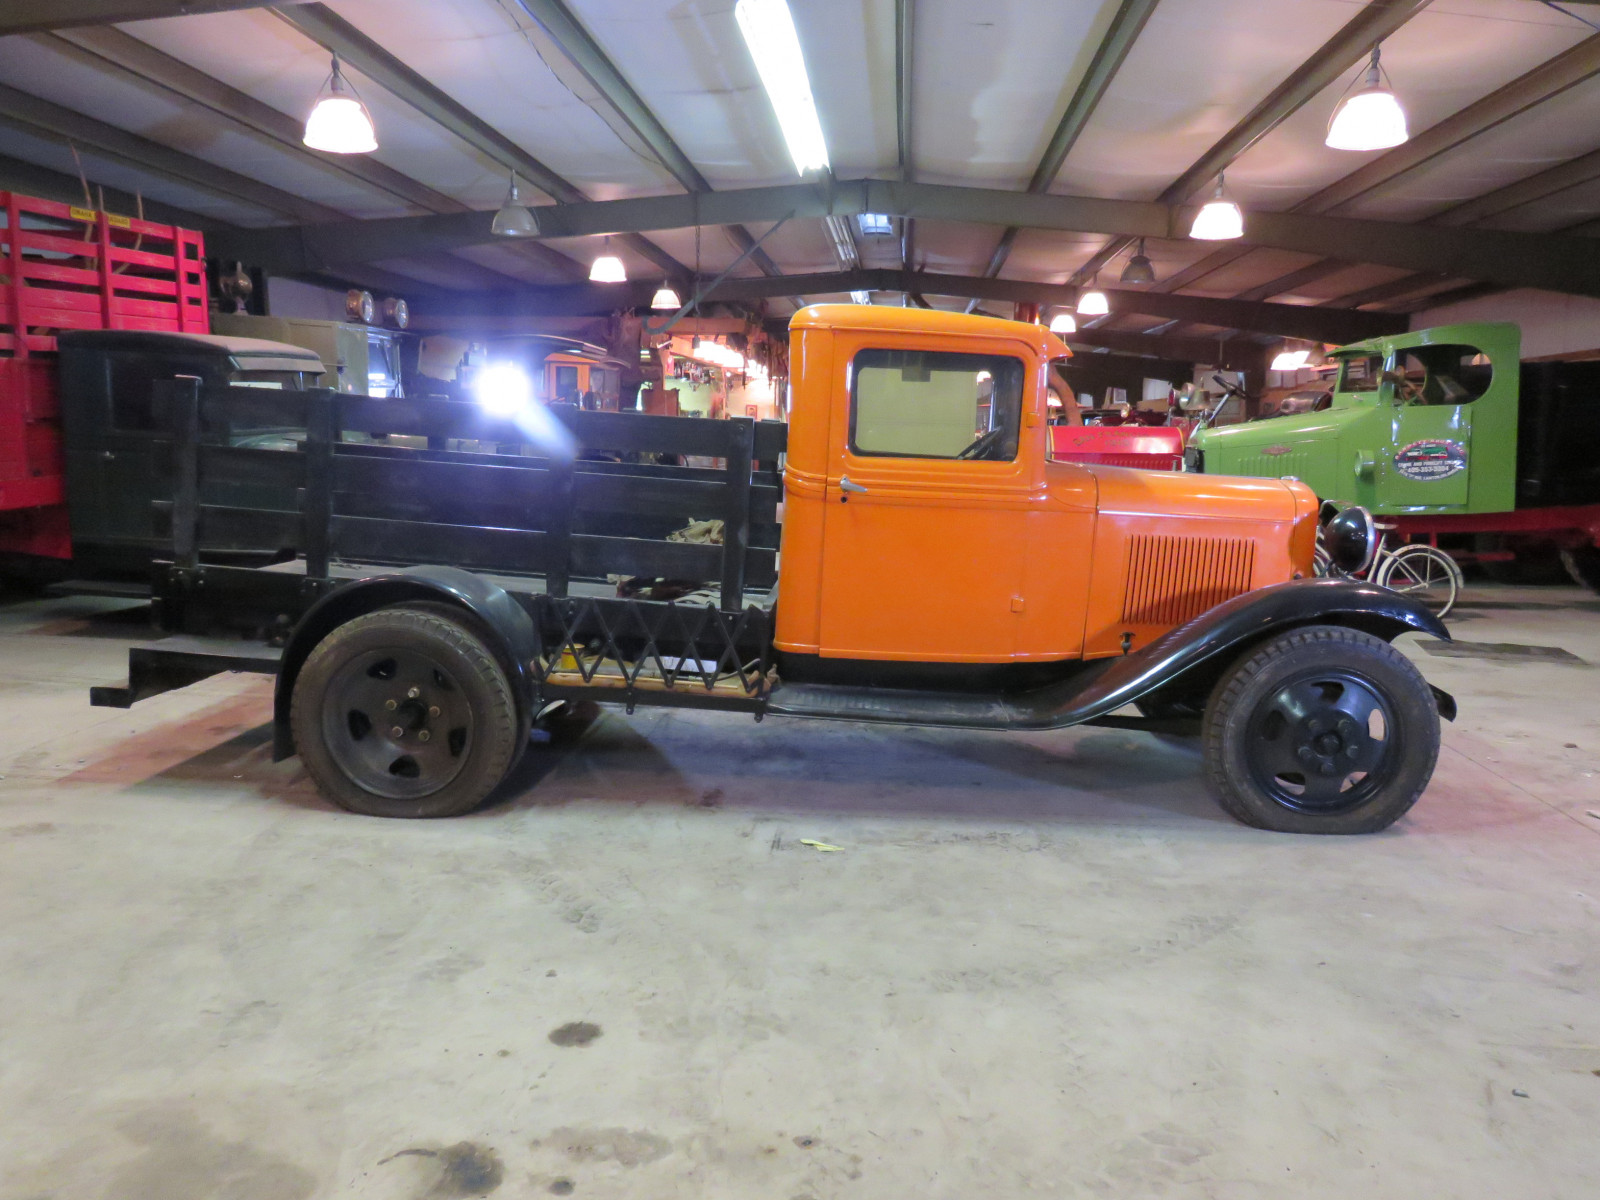 1932 1/2 Ford Model B Stake Bed Truck - Image 5